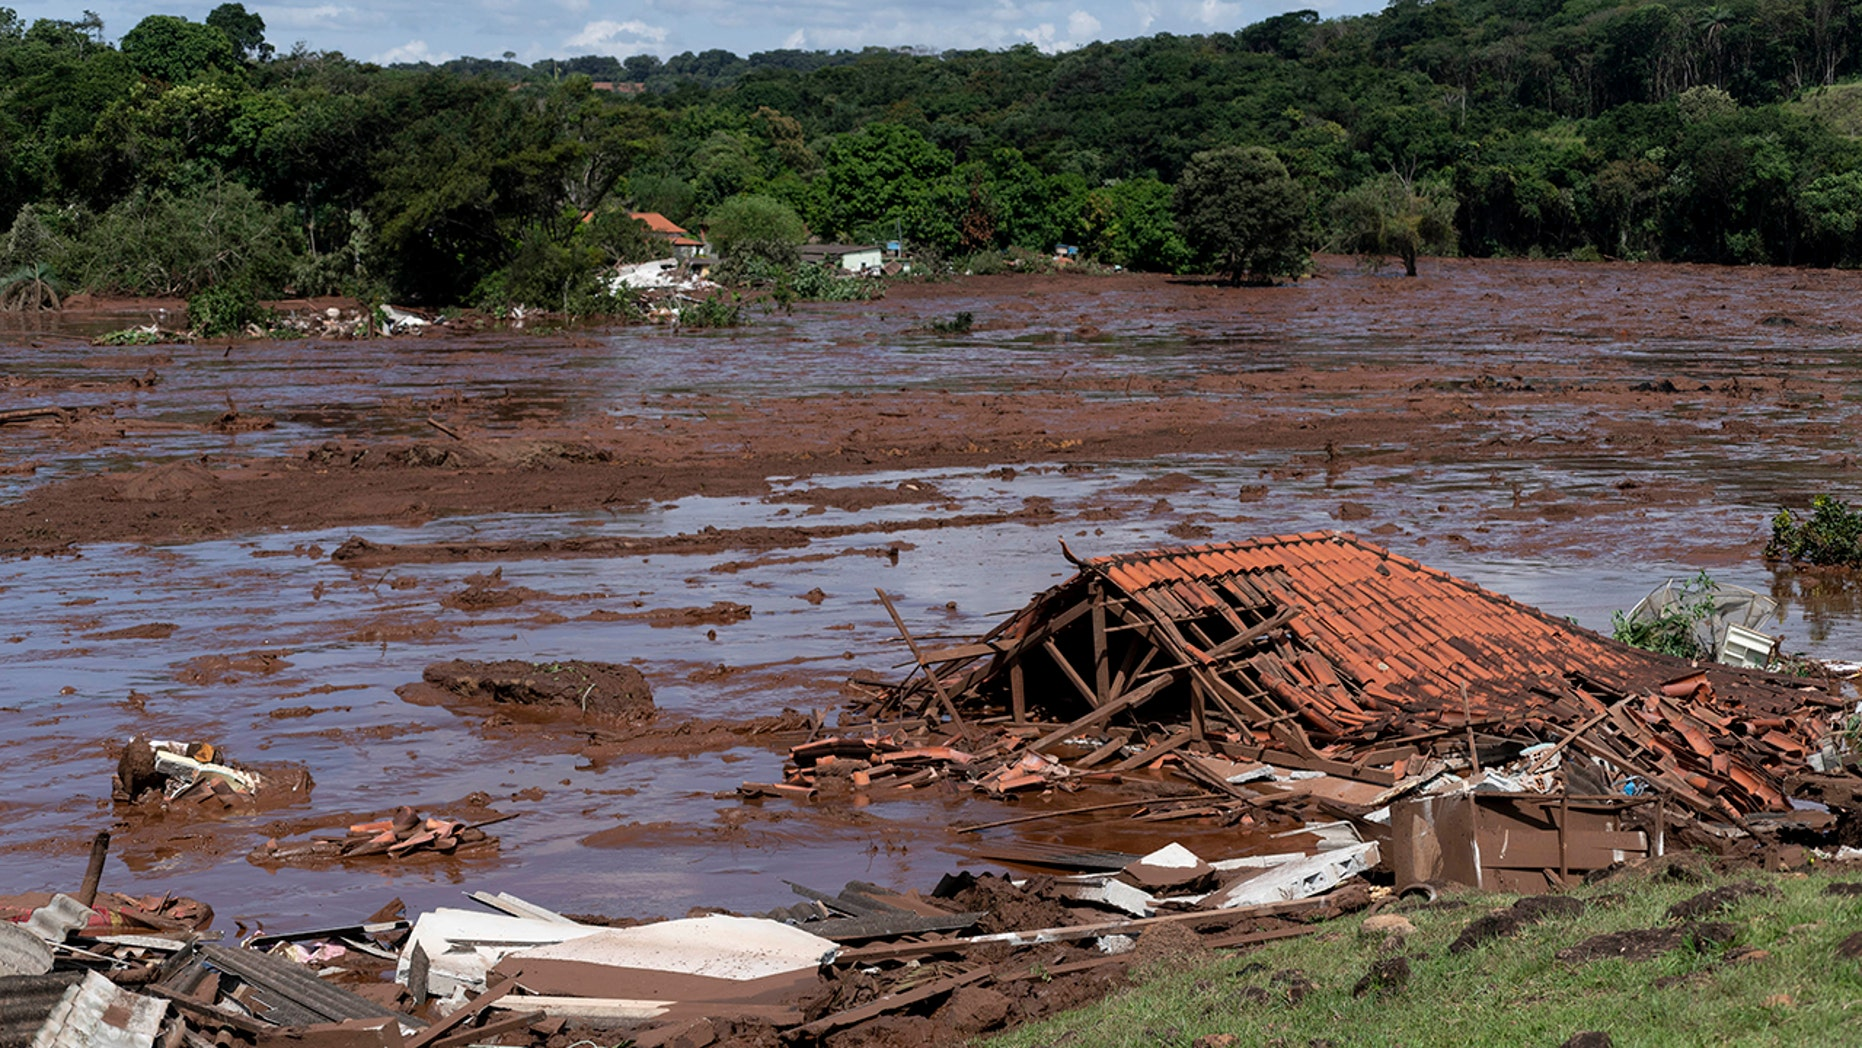 A structure is in ruins after a dam collapsed near Brumadinho, Brazil, Friday, Jan. 25, 2019. (Leo Drumond/Nitro via AP)